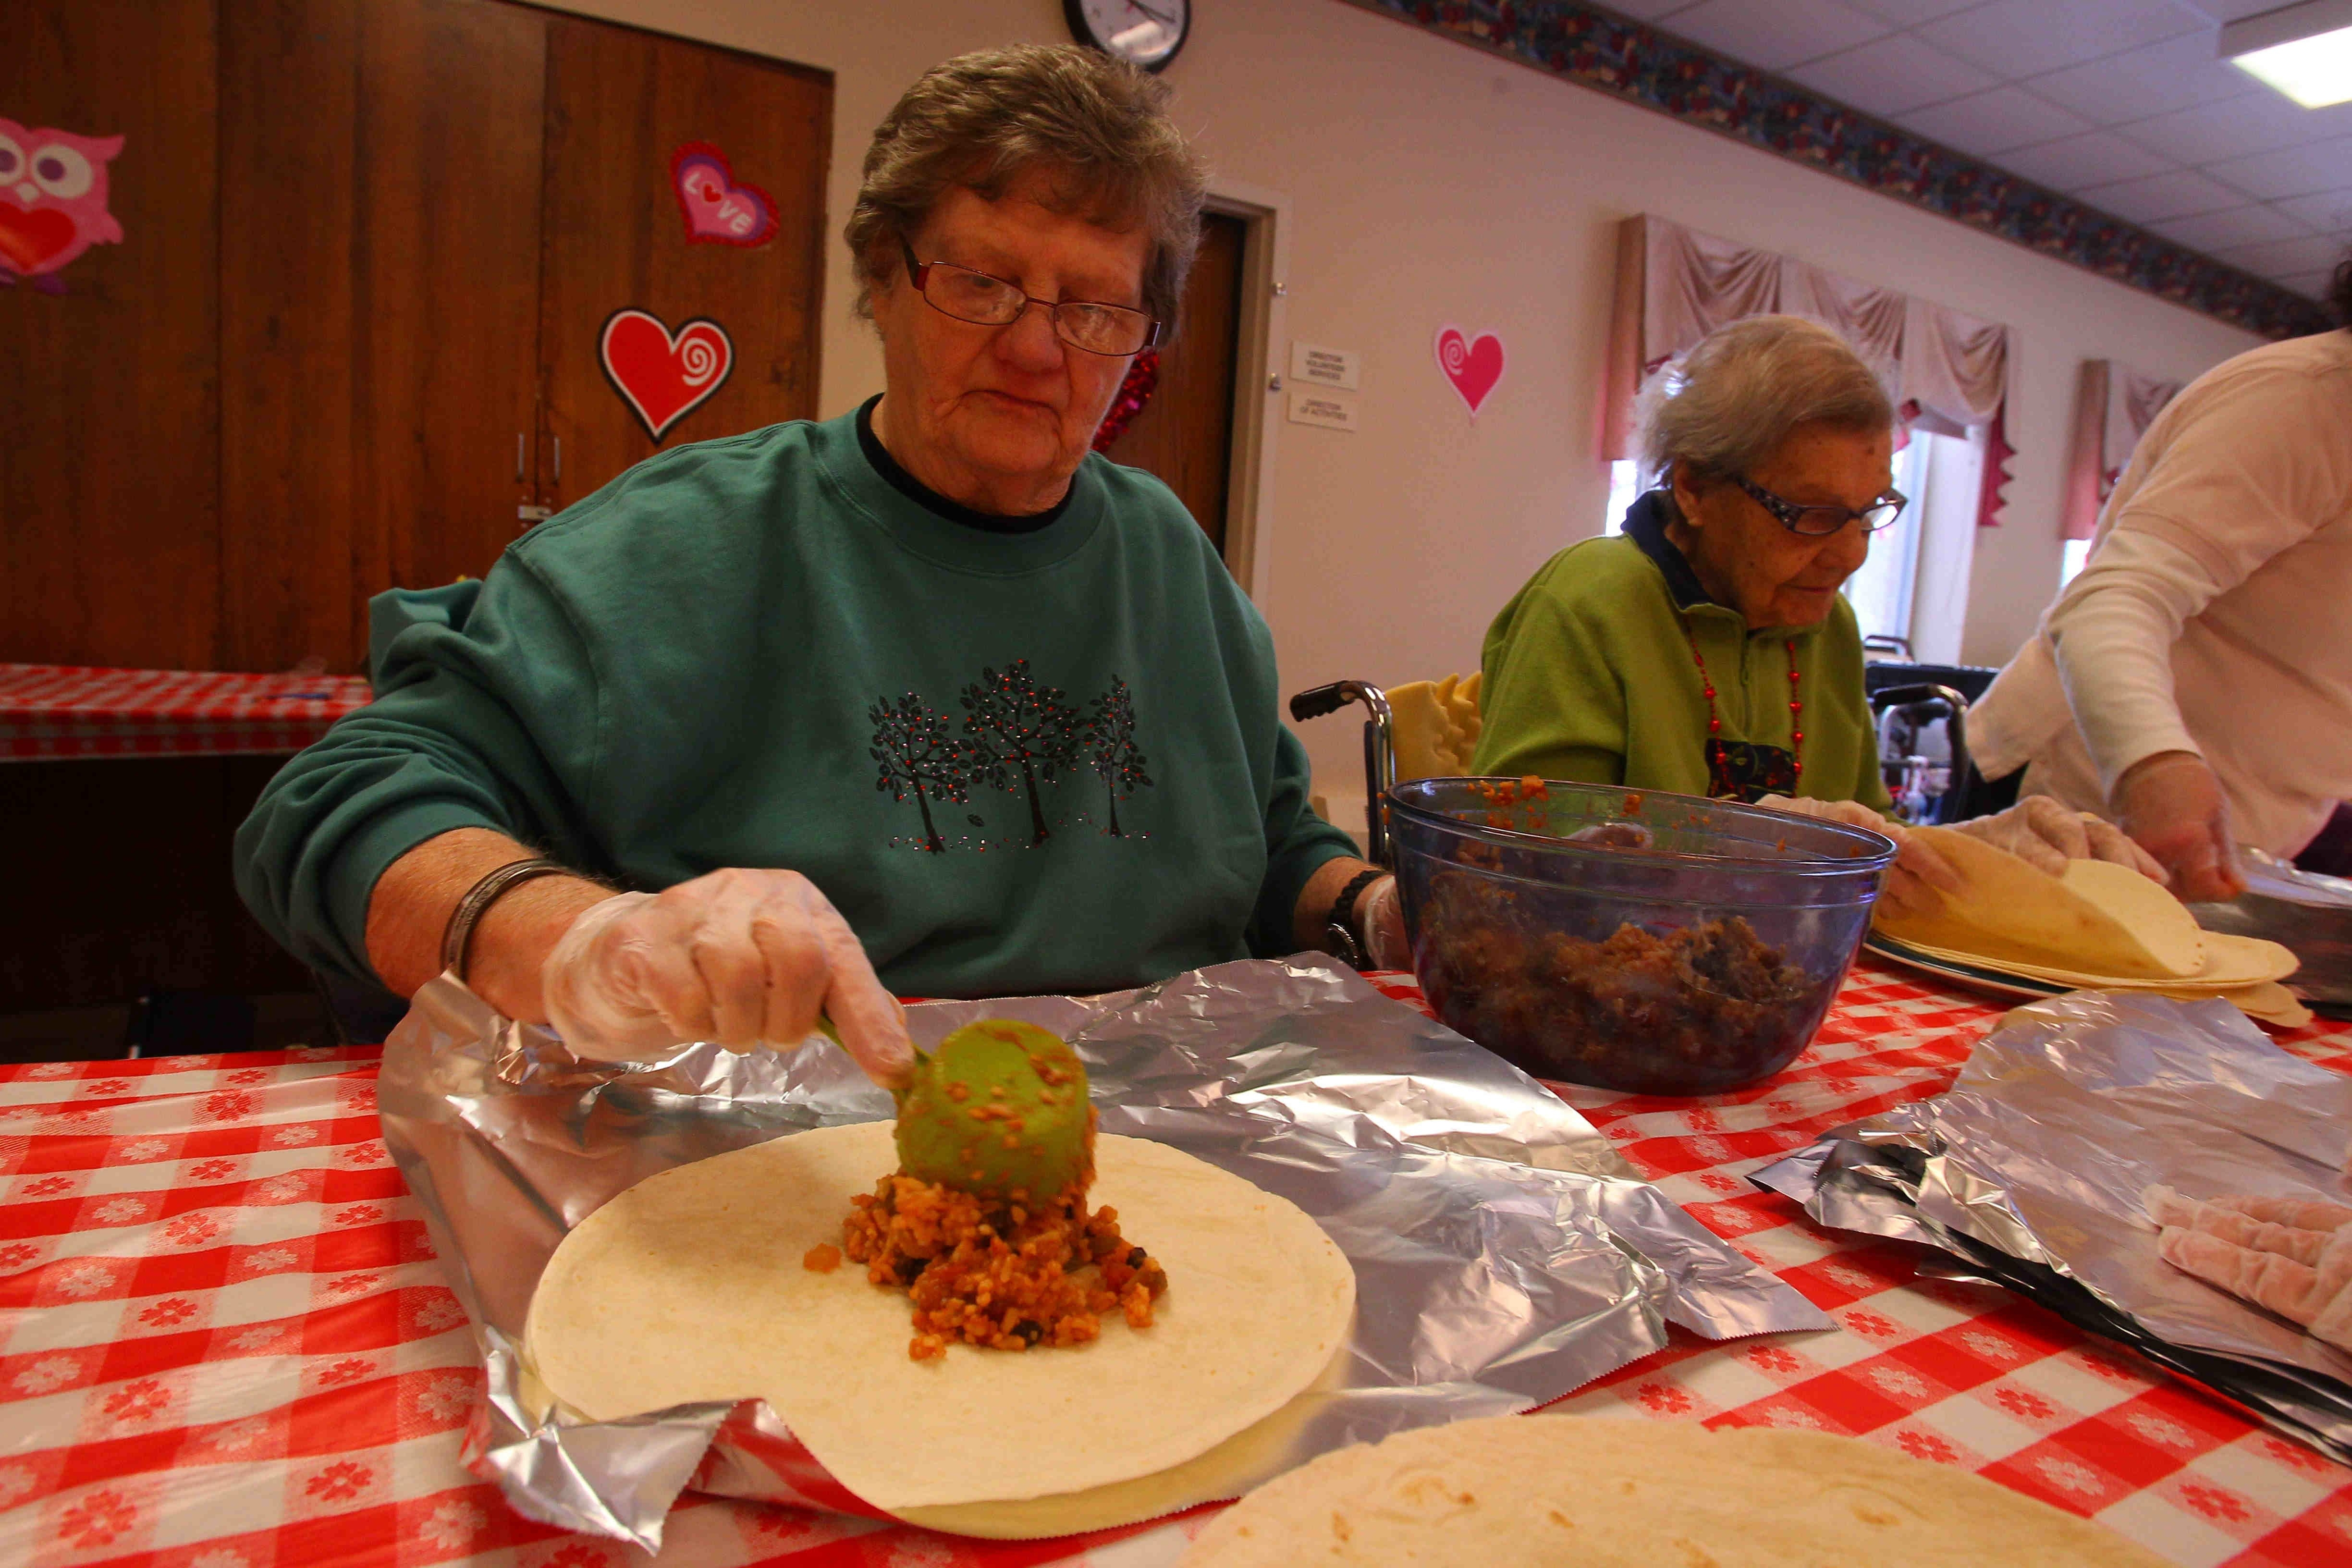 Faye Dills fills burritos at the monthly Burrito Project at Elderwood nursing home in Hamburg Tuesday. Residents of Elderwood gather and make burritos that are distributed to the homeless on Buffalo streets.